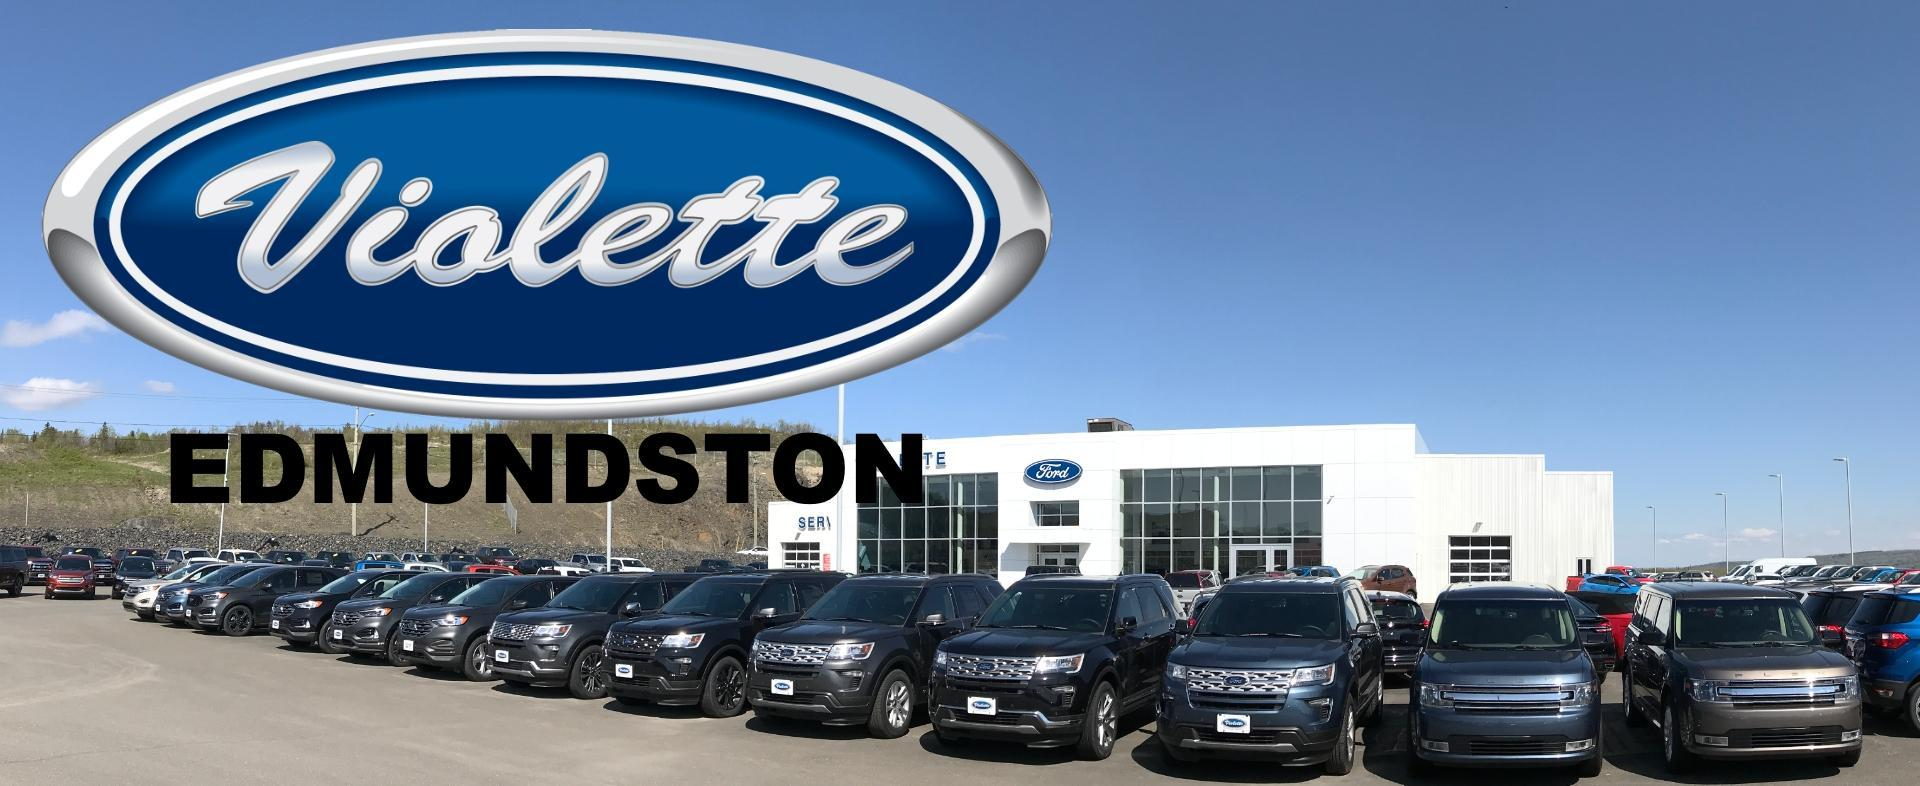 New & Used Ford Cars, Trucks & SUVs Dealership in Edmundston, NB